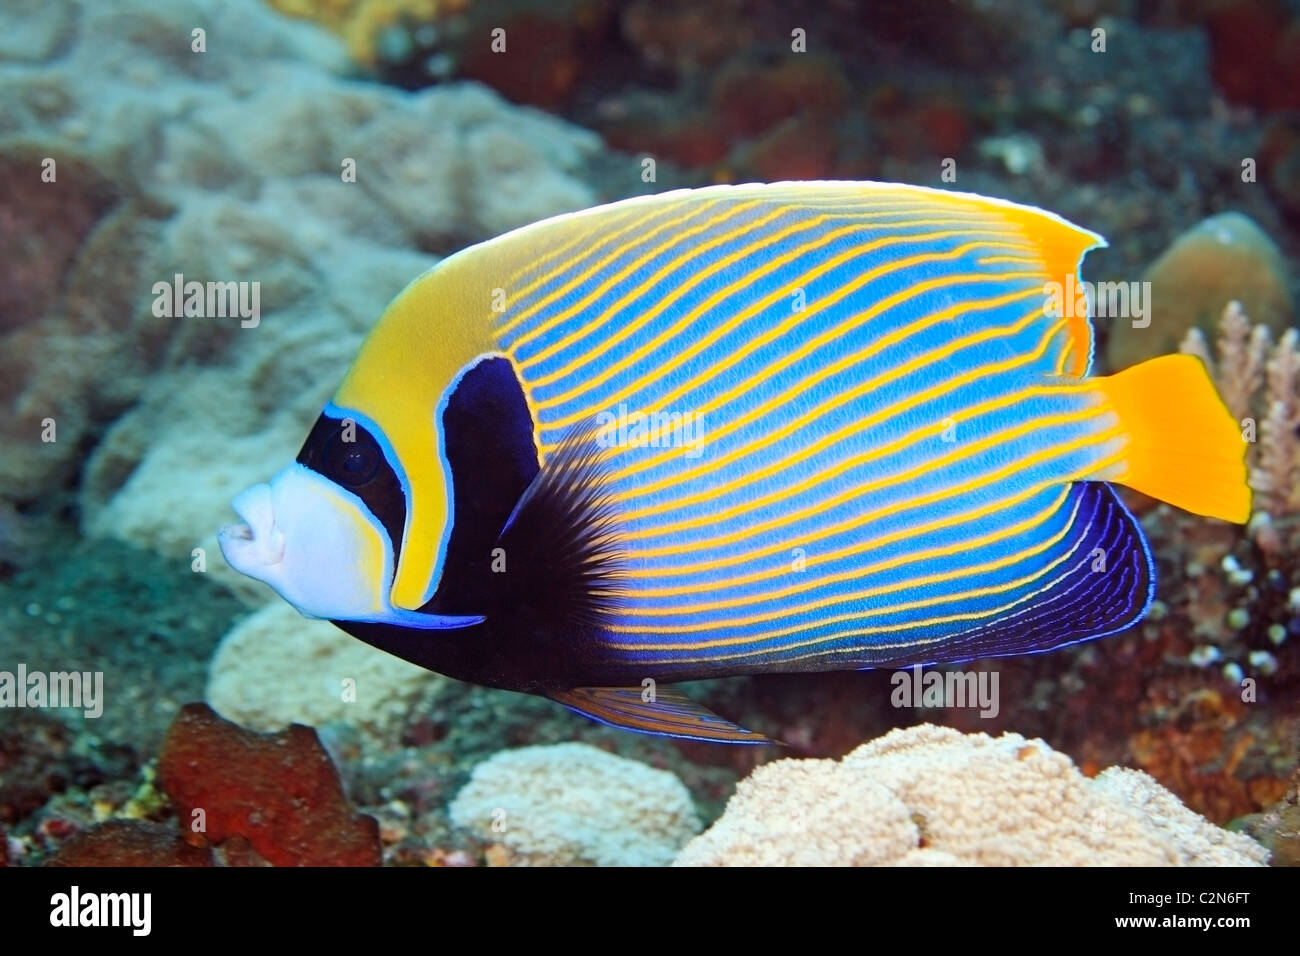 emperor-angelfish-pomacanthus-imperator-swimming-on-the-reef-underwater-C2N6FT.jpg